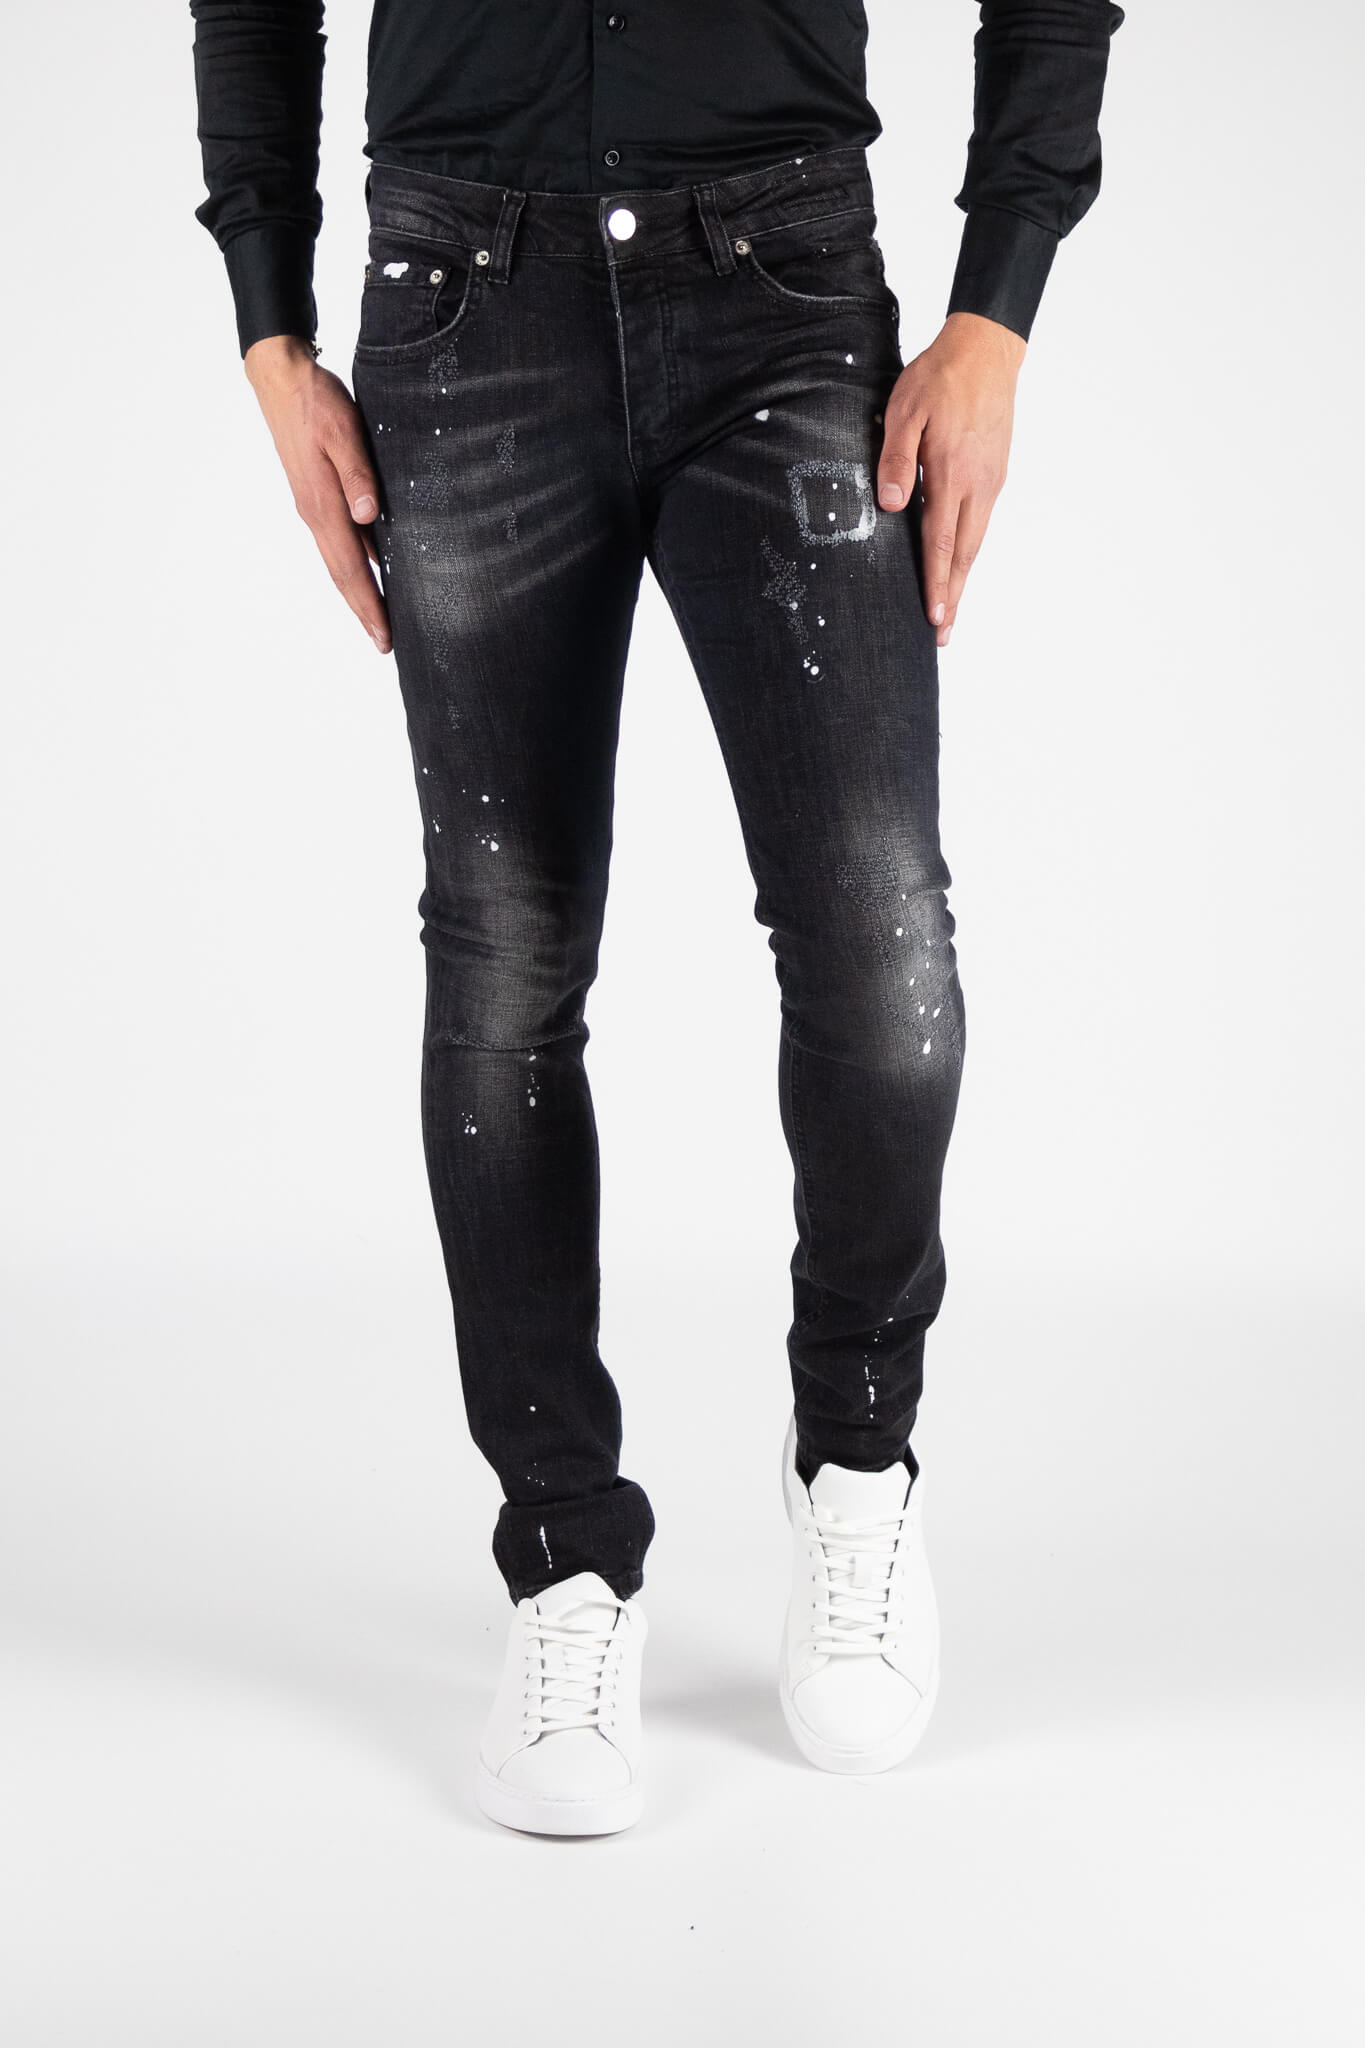 Chaves Black Jeans 1